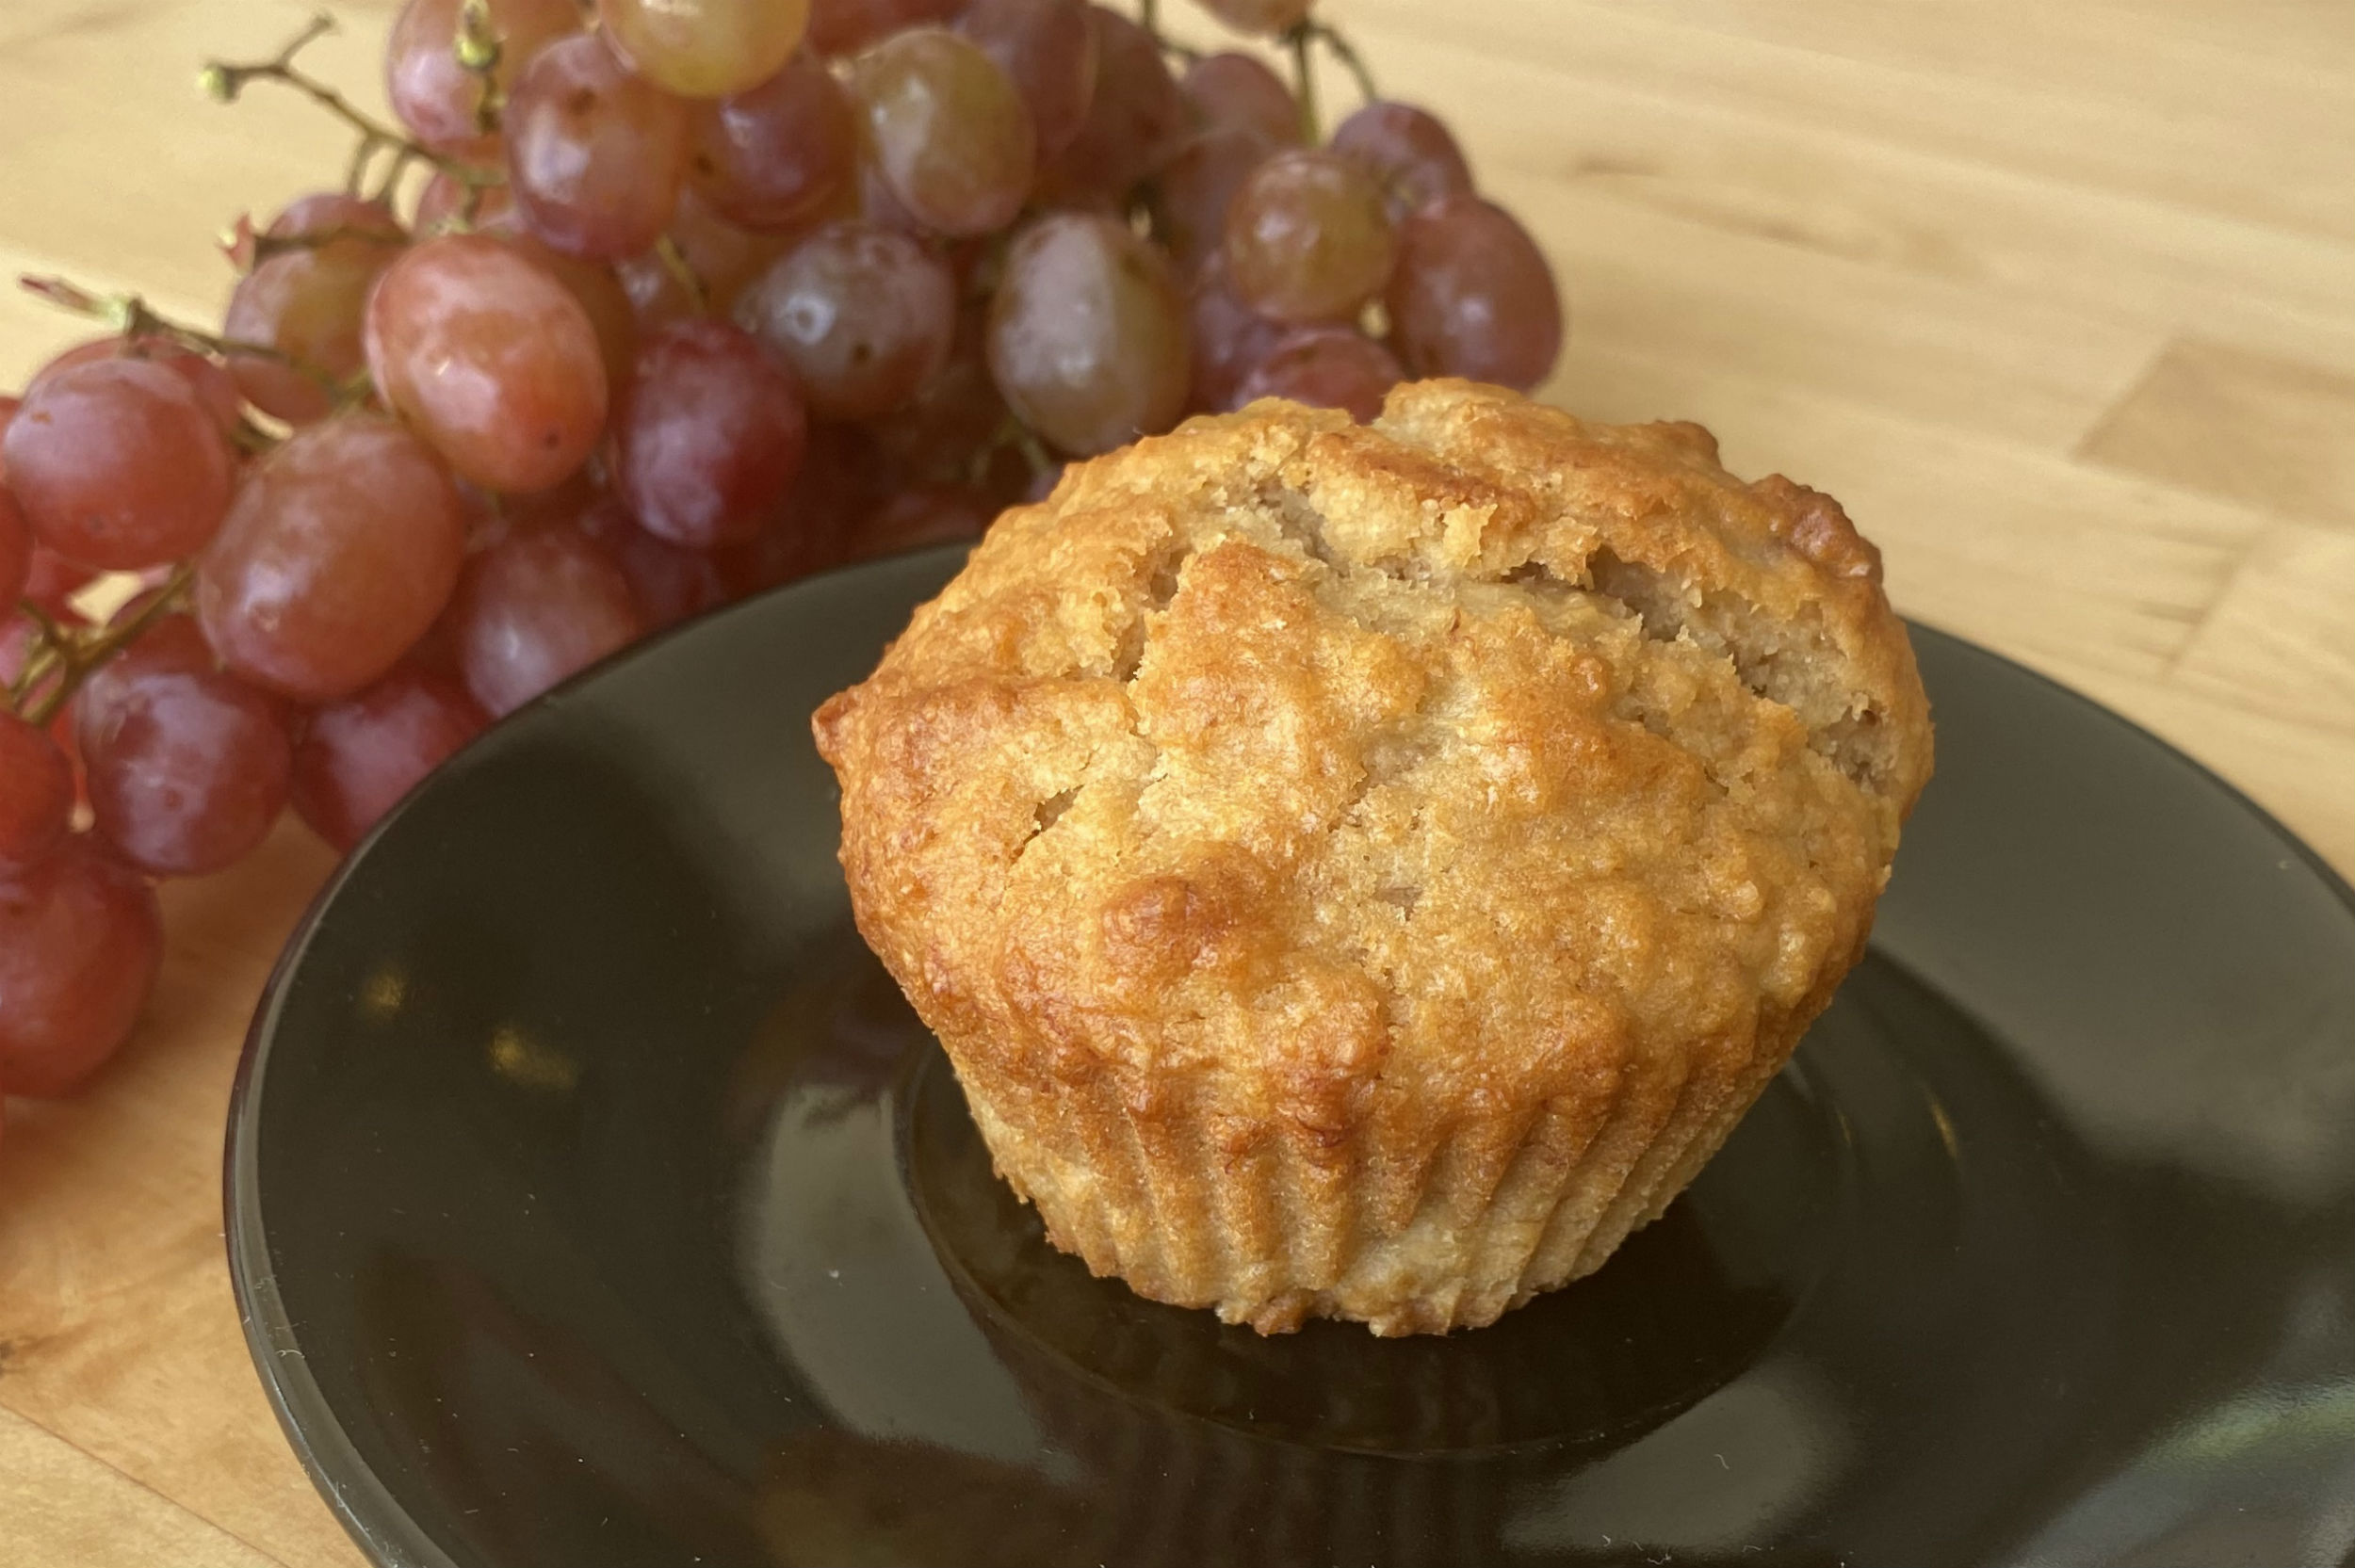 banana muffin on black saucer with grapes beside it